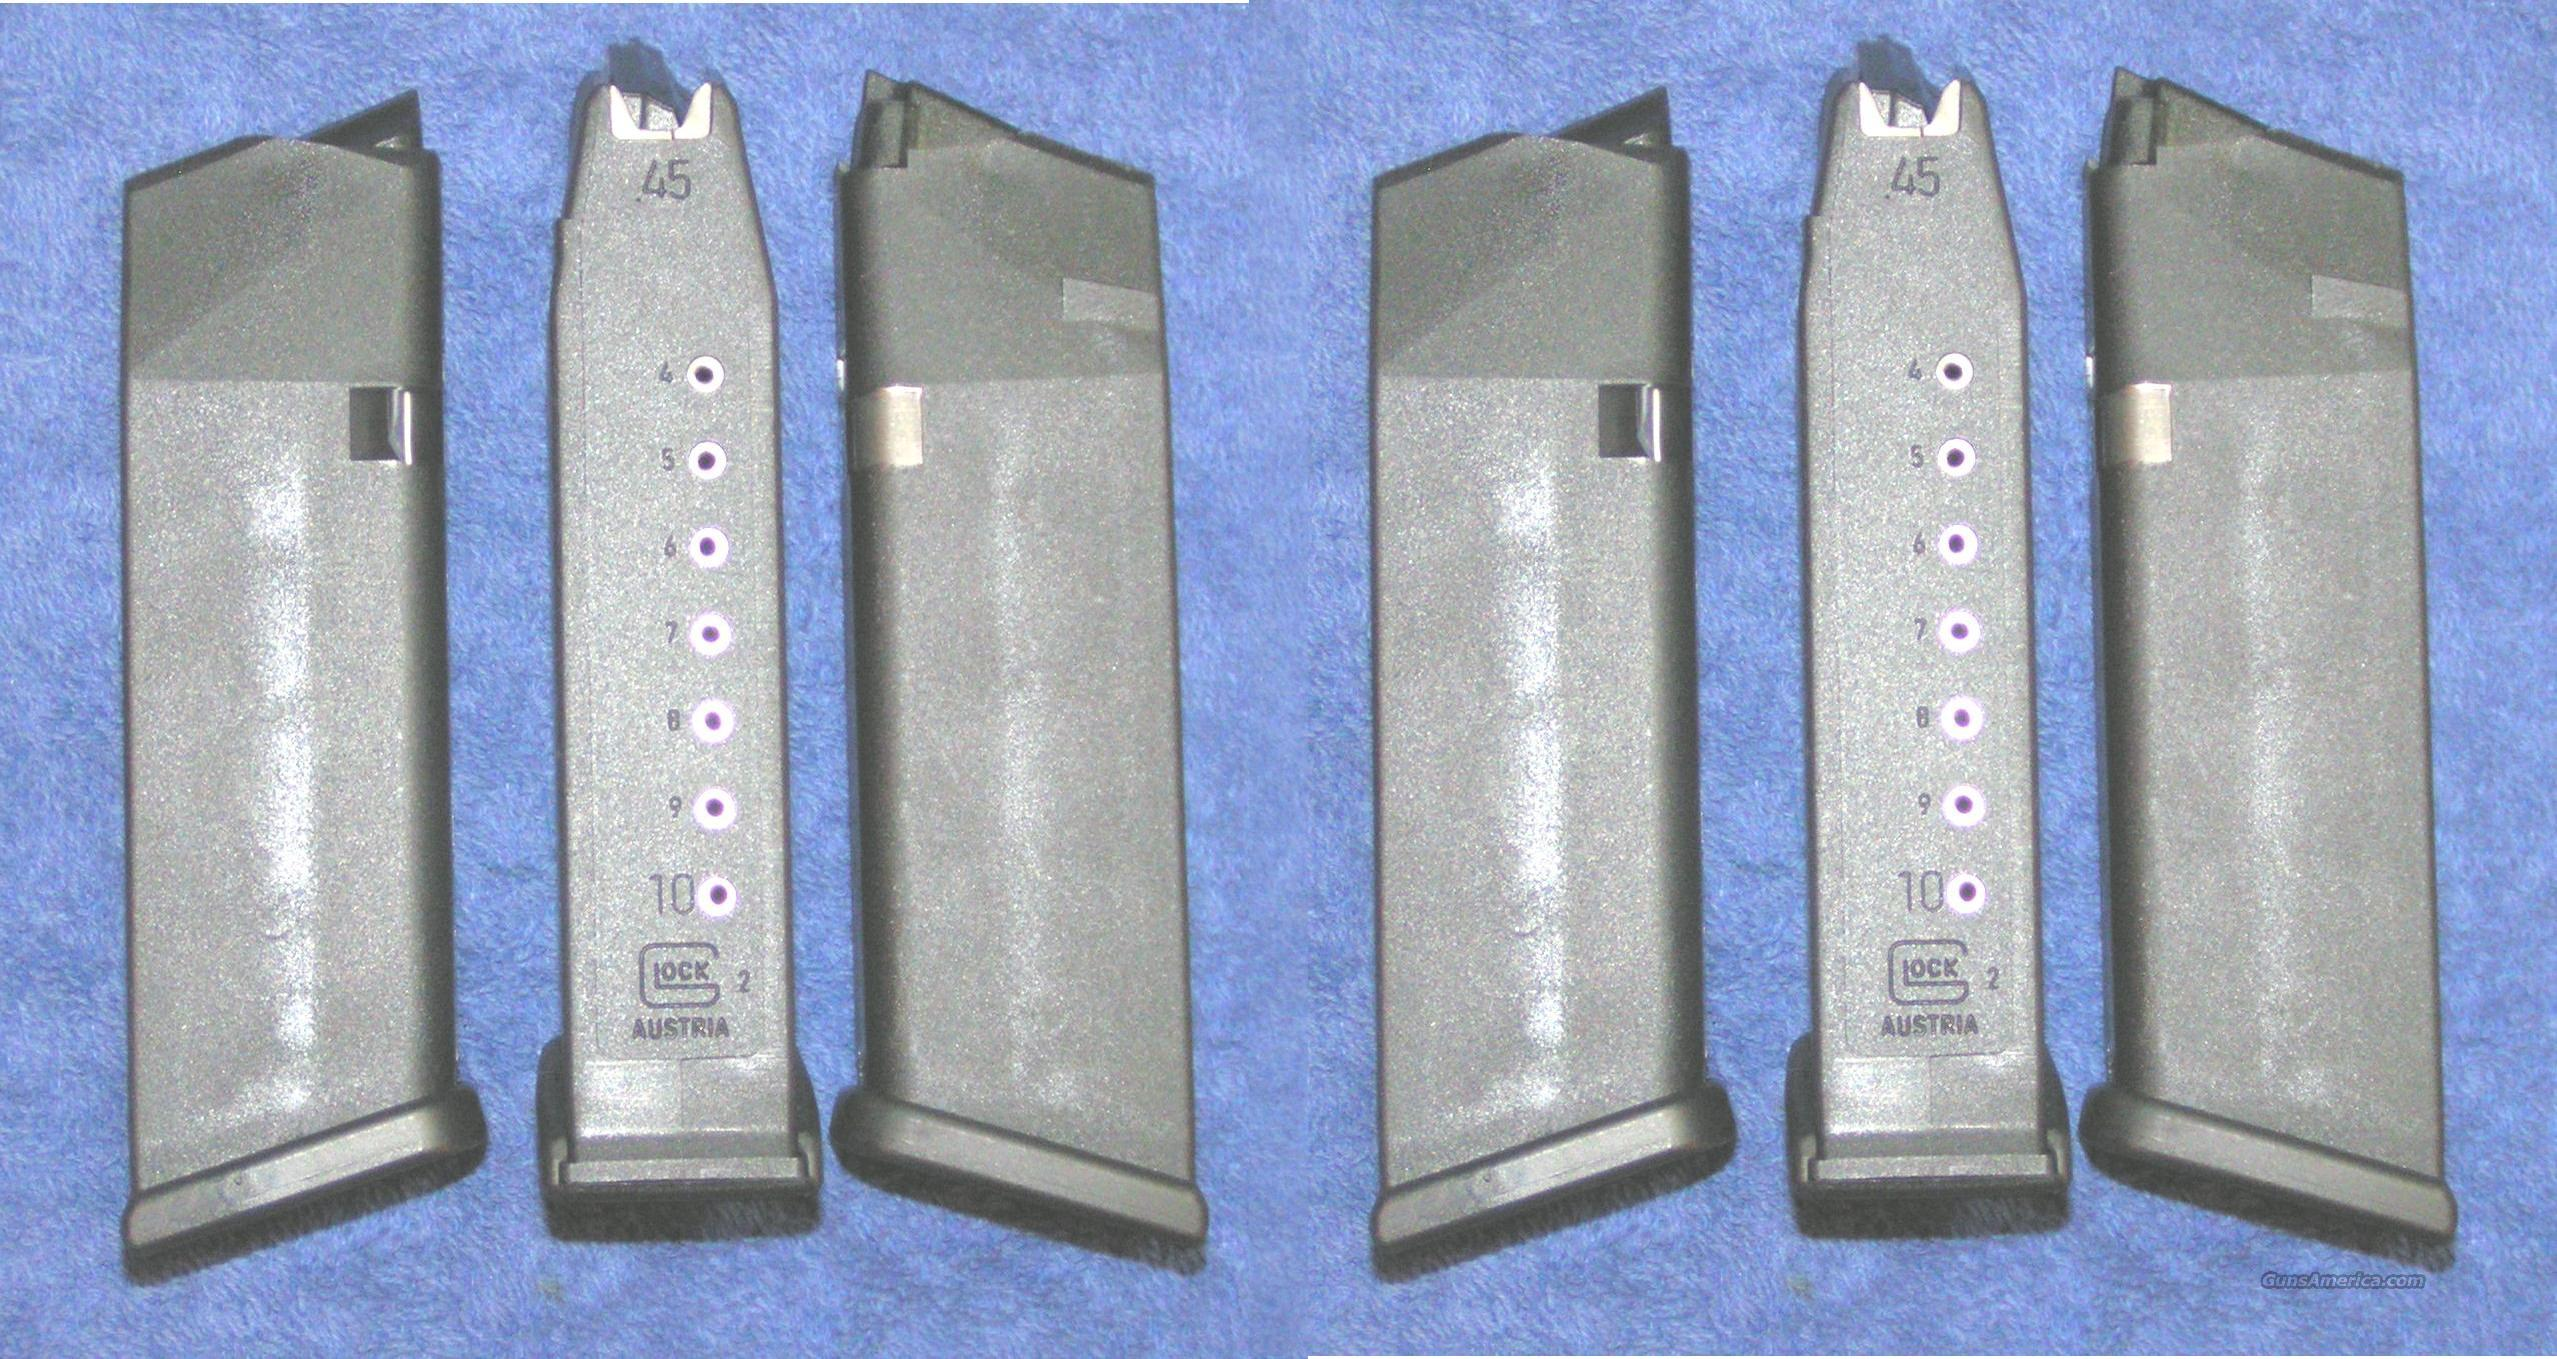 6 Glock 21 mags 10 rd 45ACP factory new $25 each  Non-Guns > Magazines & Clips